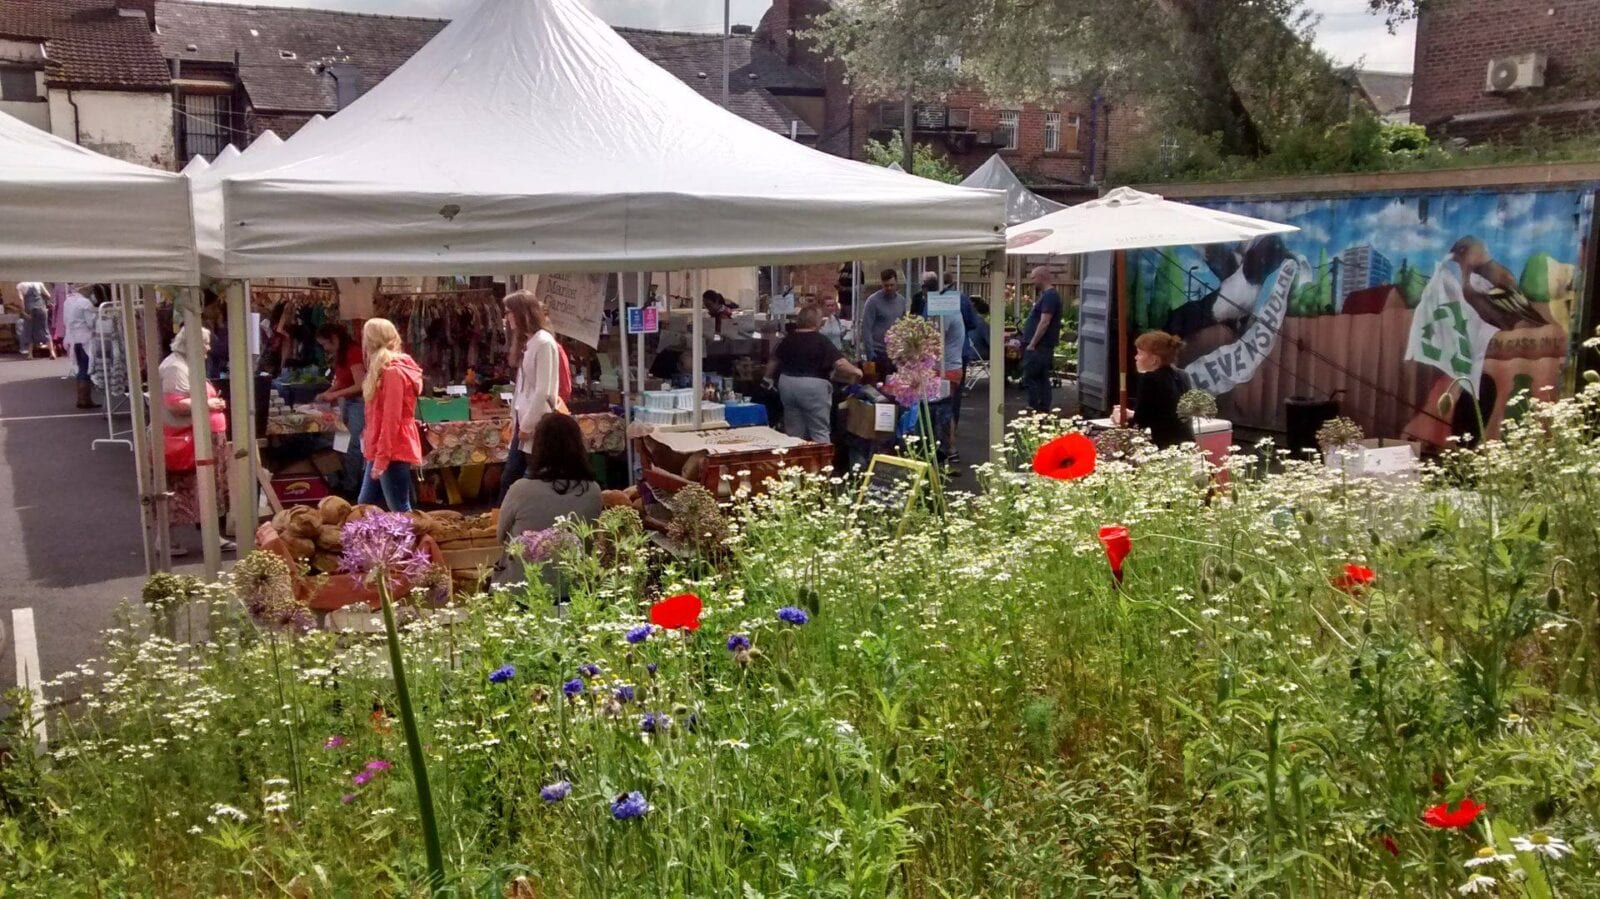 Award-winning Levenshulme Market secures four-year future after 'challenging' year, The Manc